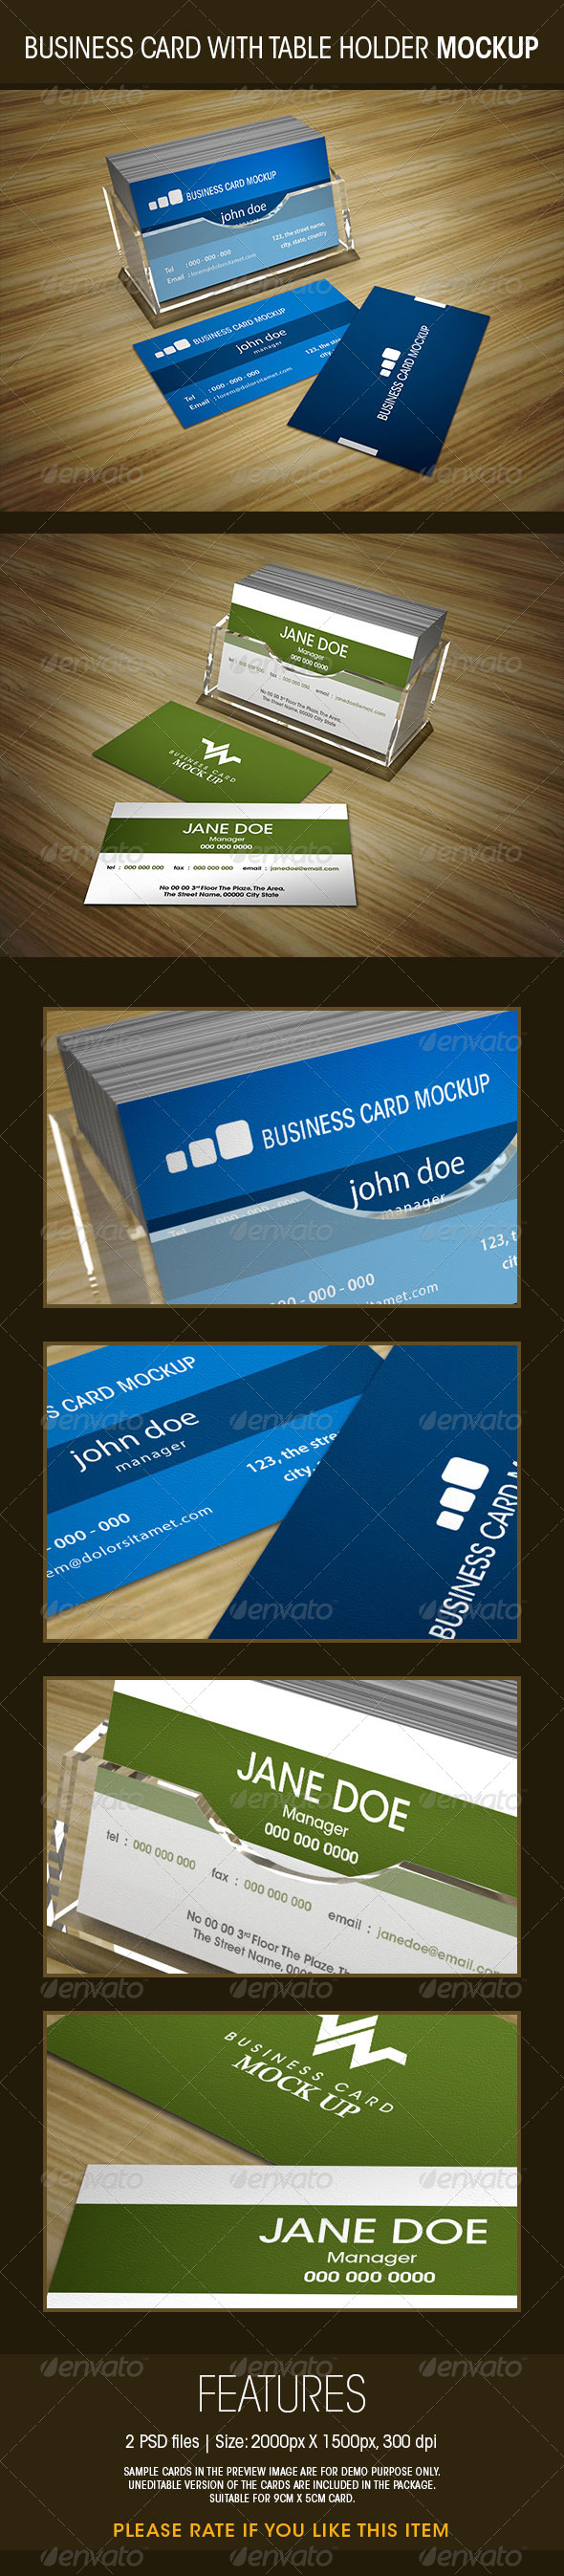 GraphicRiver Business Card with Table Holder Mockup 5853707